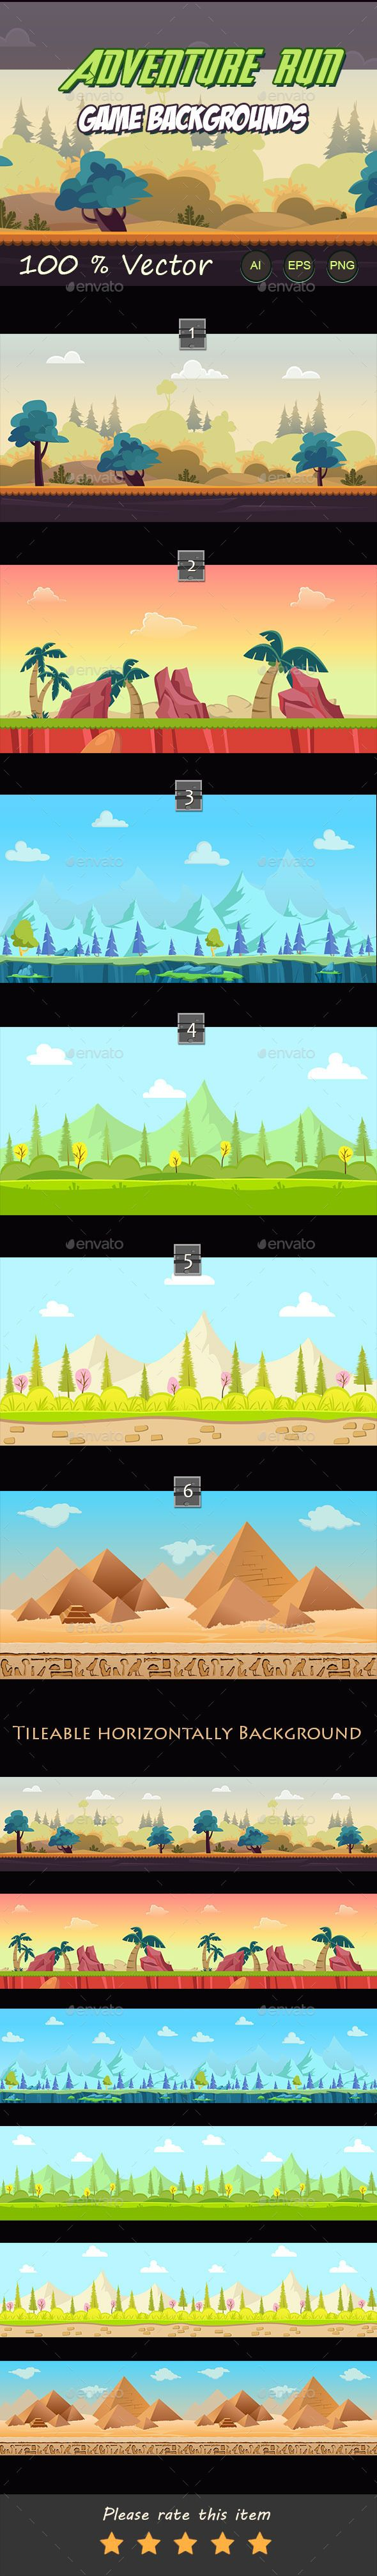 Adventure run game backgrounds - Backgrounds Game Assets